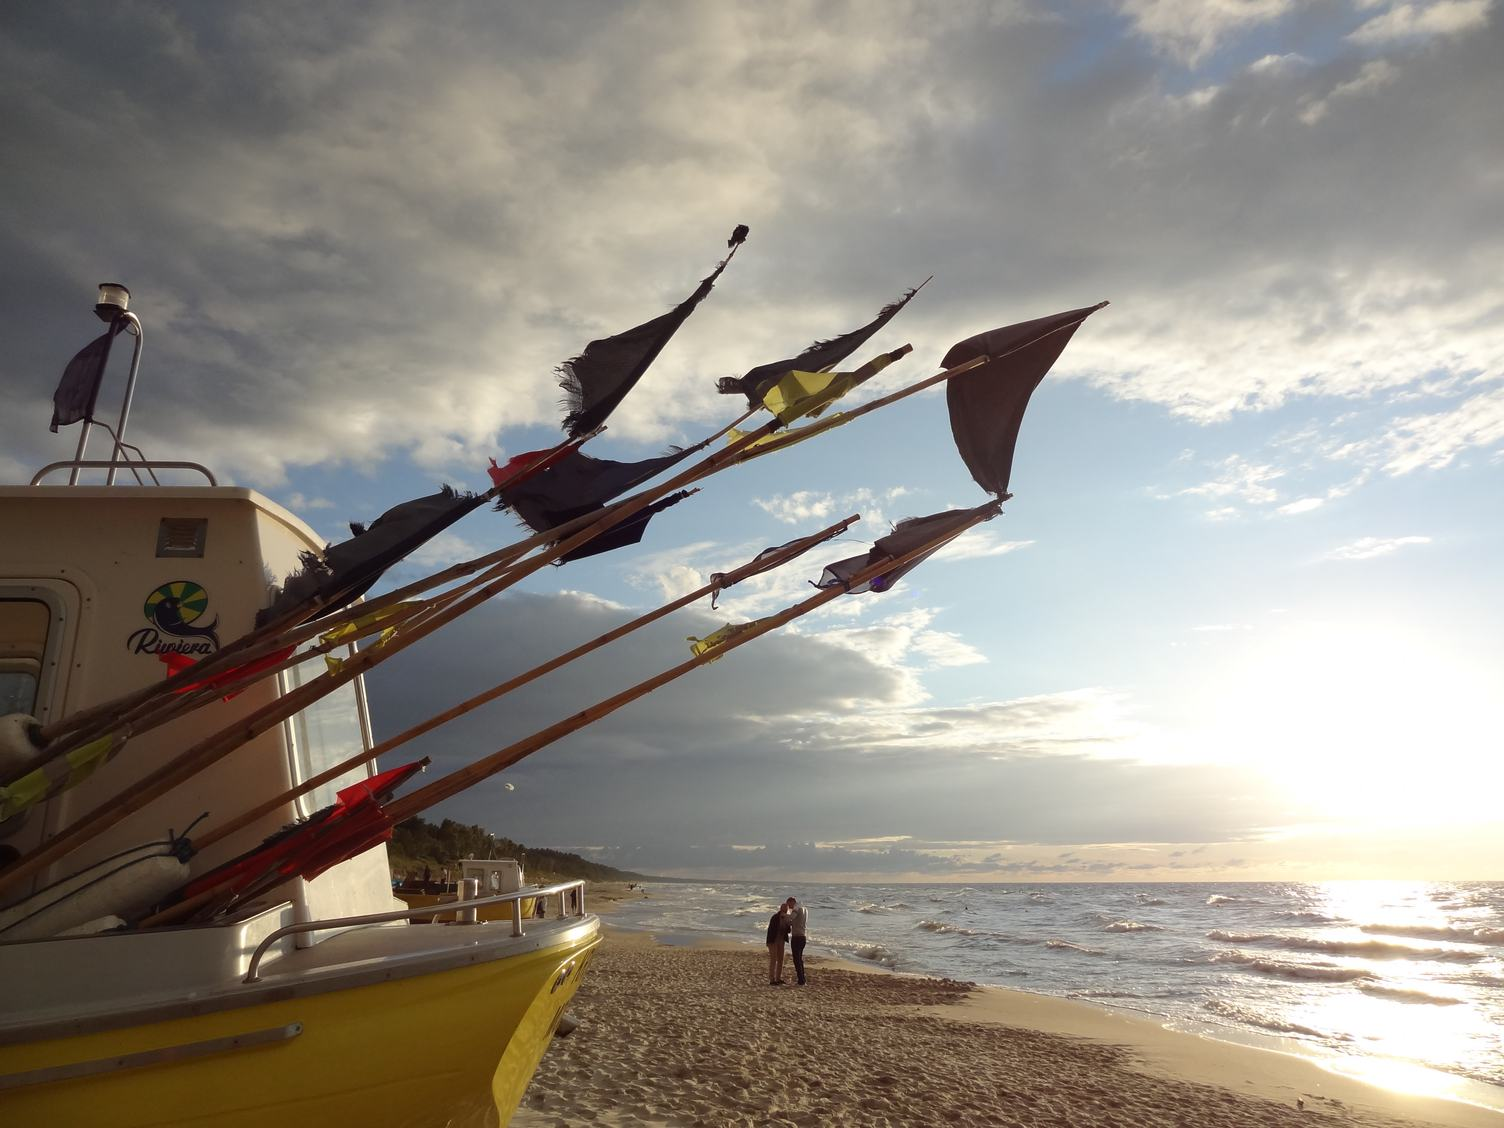 Fishing Boat on the Beach Sunset